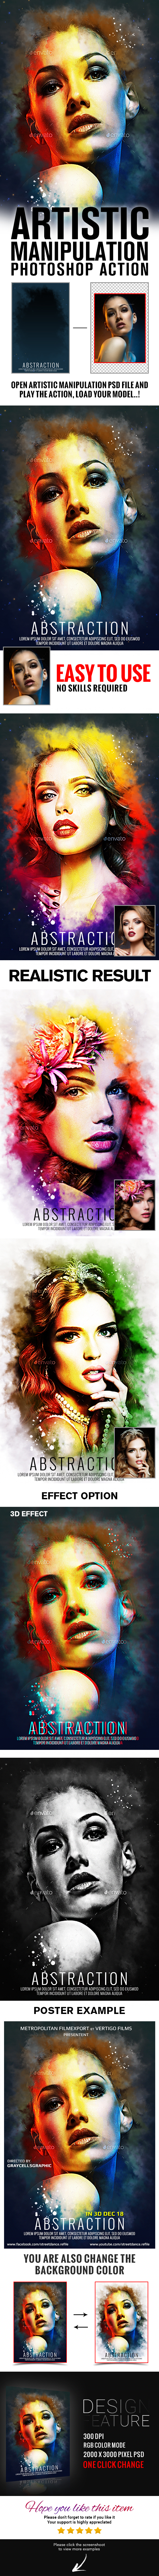 GraphicRiver Artistic Manipulation Actions V1 20432558